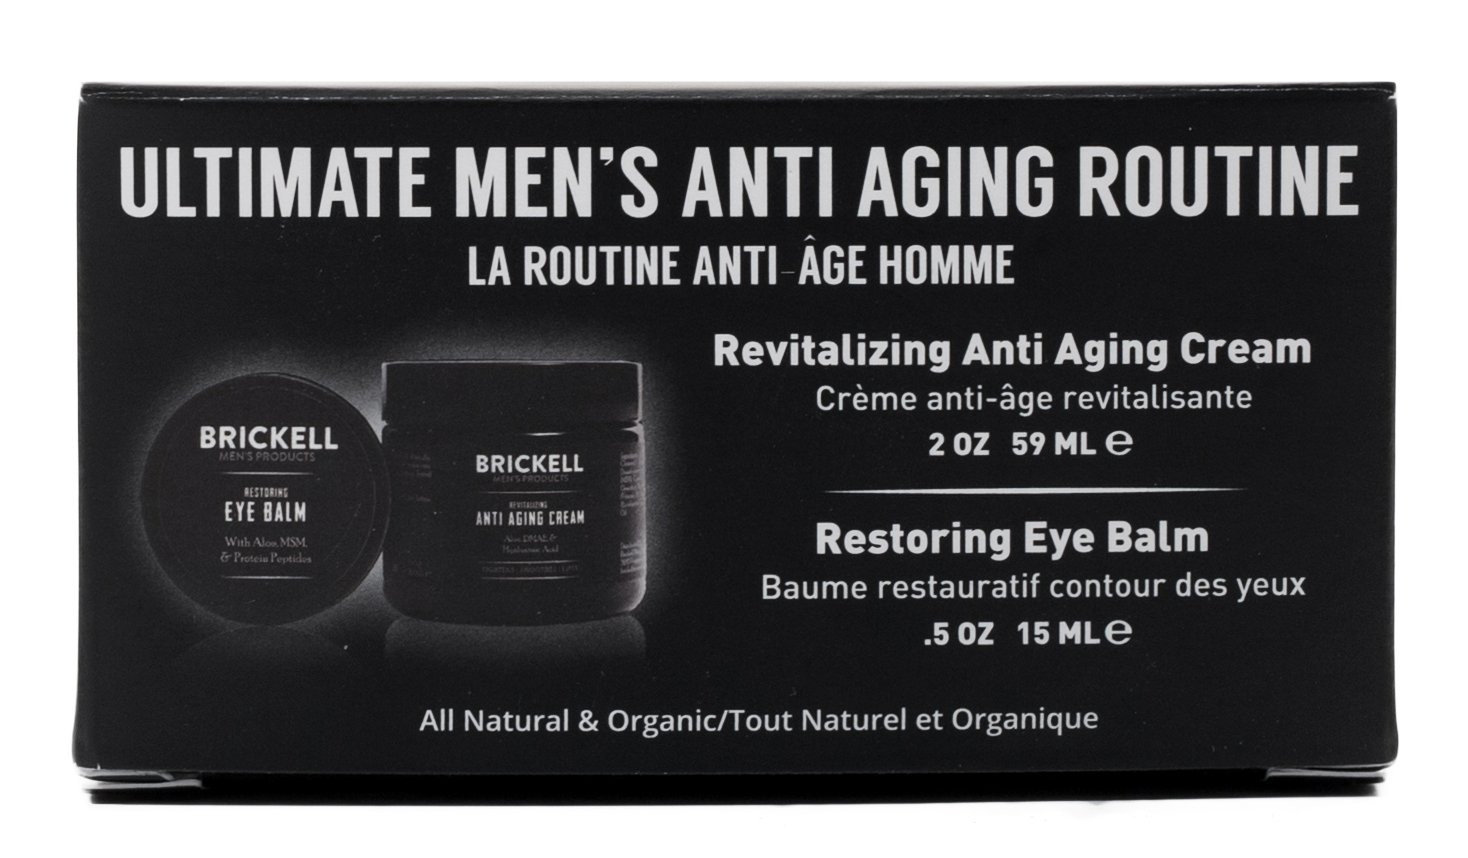 Watch The Ultimate Anti-Aging Routine video